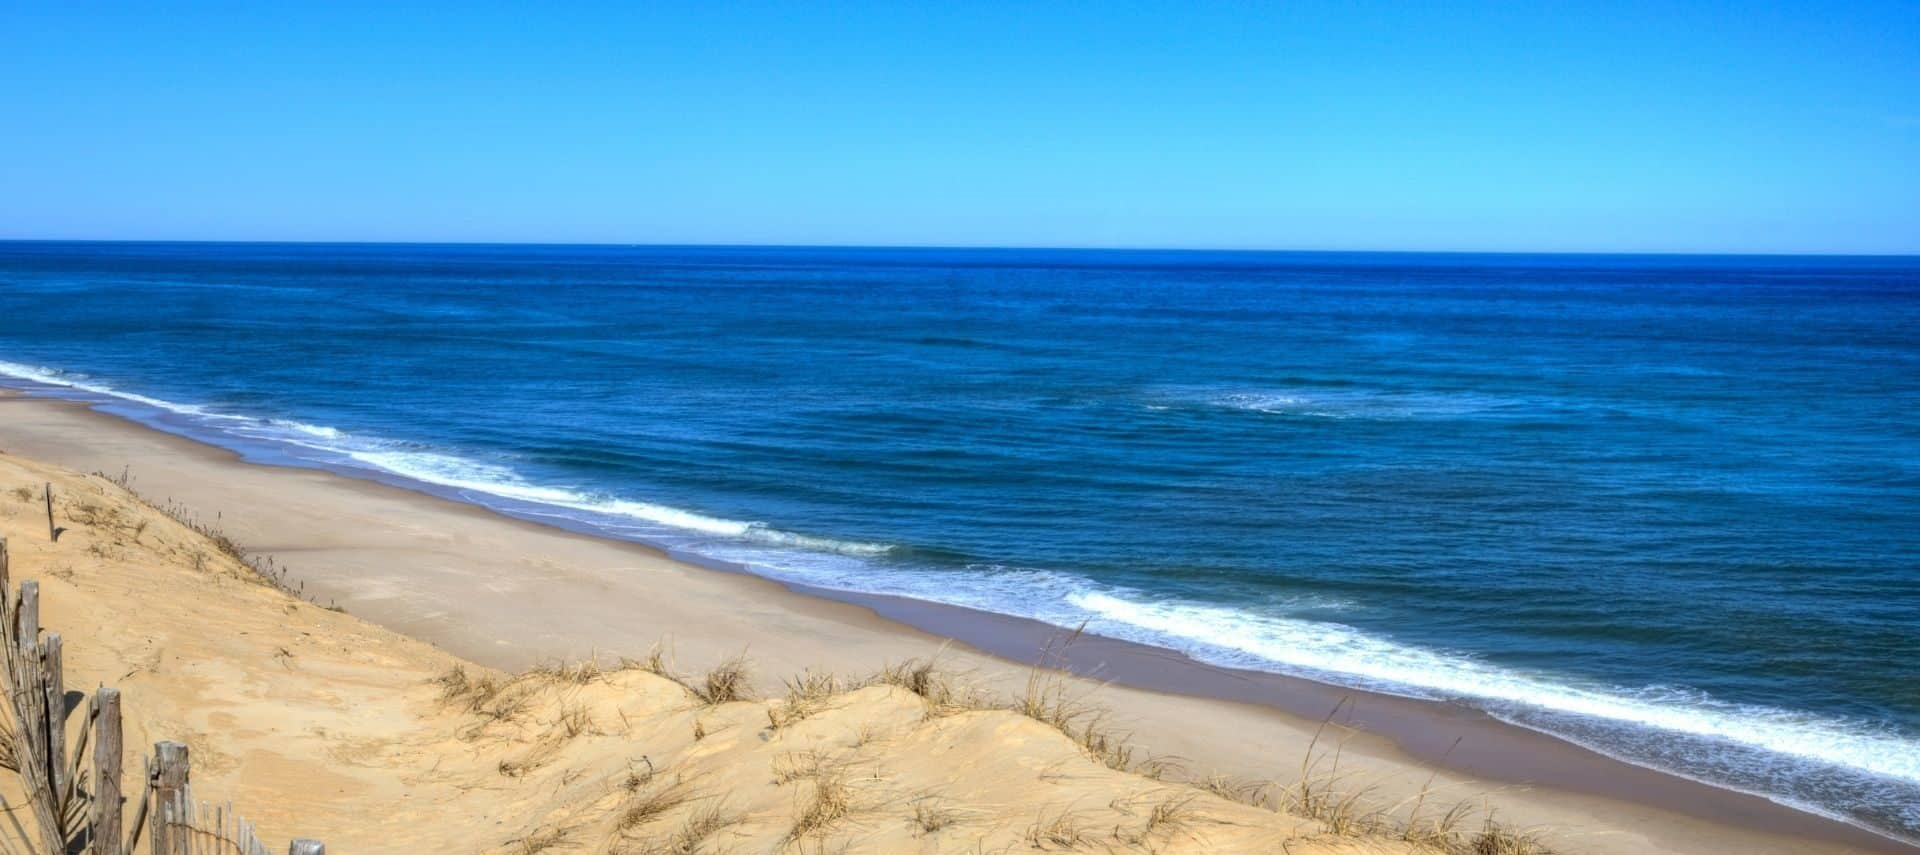 Cape Cod National Seashore with sandy beach, deep blue waters, and bright blue sky